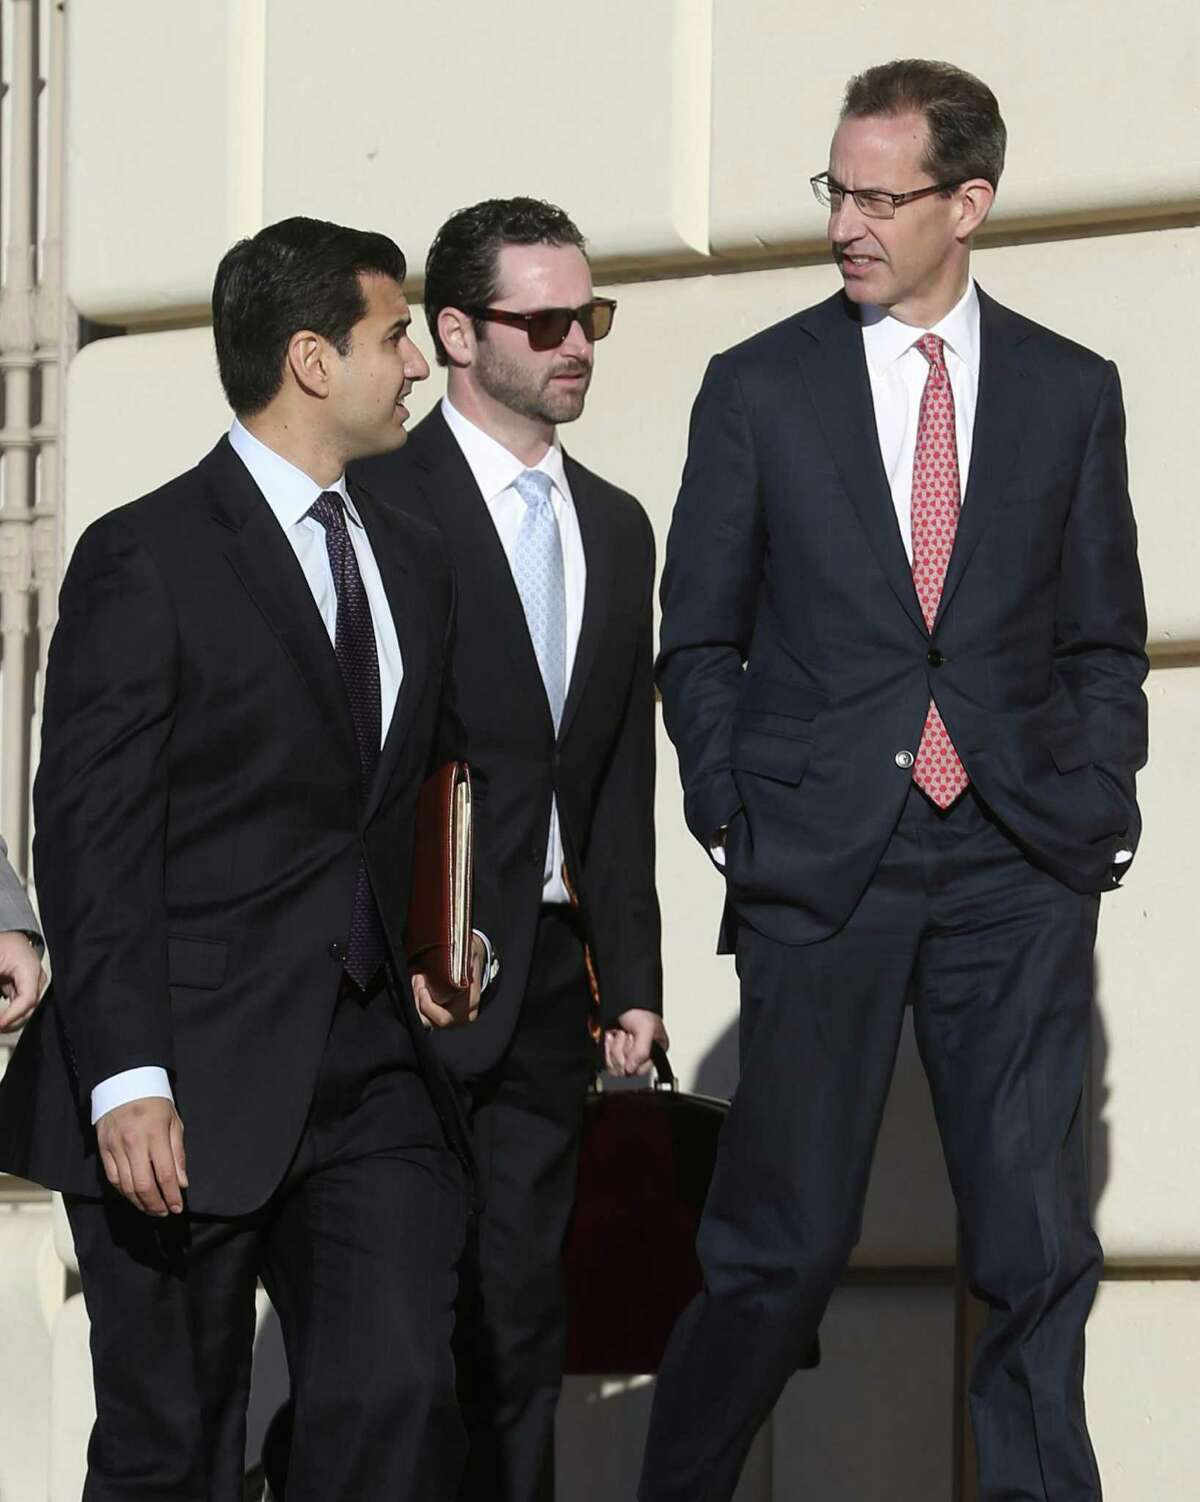 Attorney Todd Prins, right, accused of fabricating court documents and forging judges' signatures in clients' cases, arrives Tuesday morning, Dec. 6, 2016 at the Hipolito Garcia Federal Building and U.S. Courthouse for a creditors' meeting.